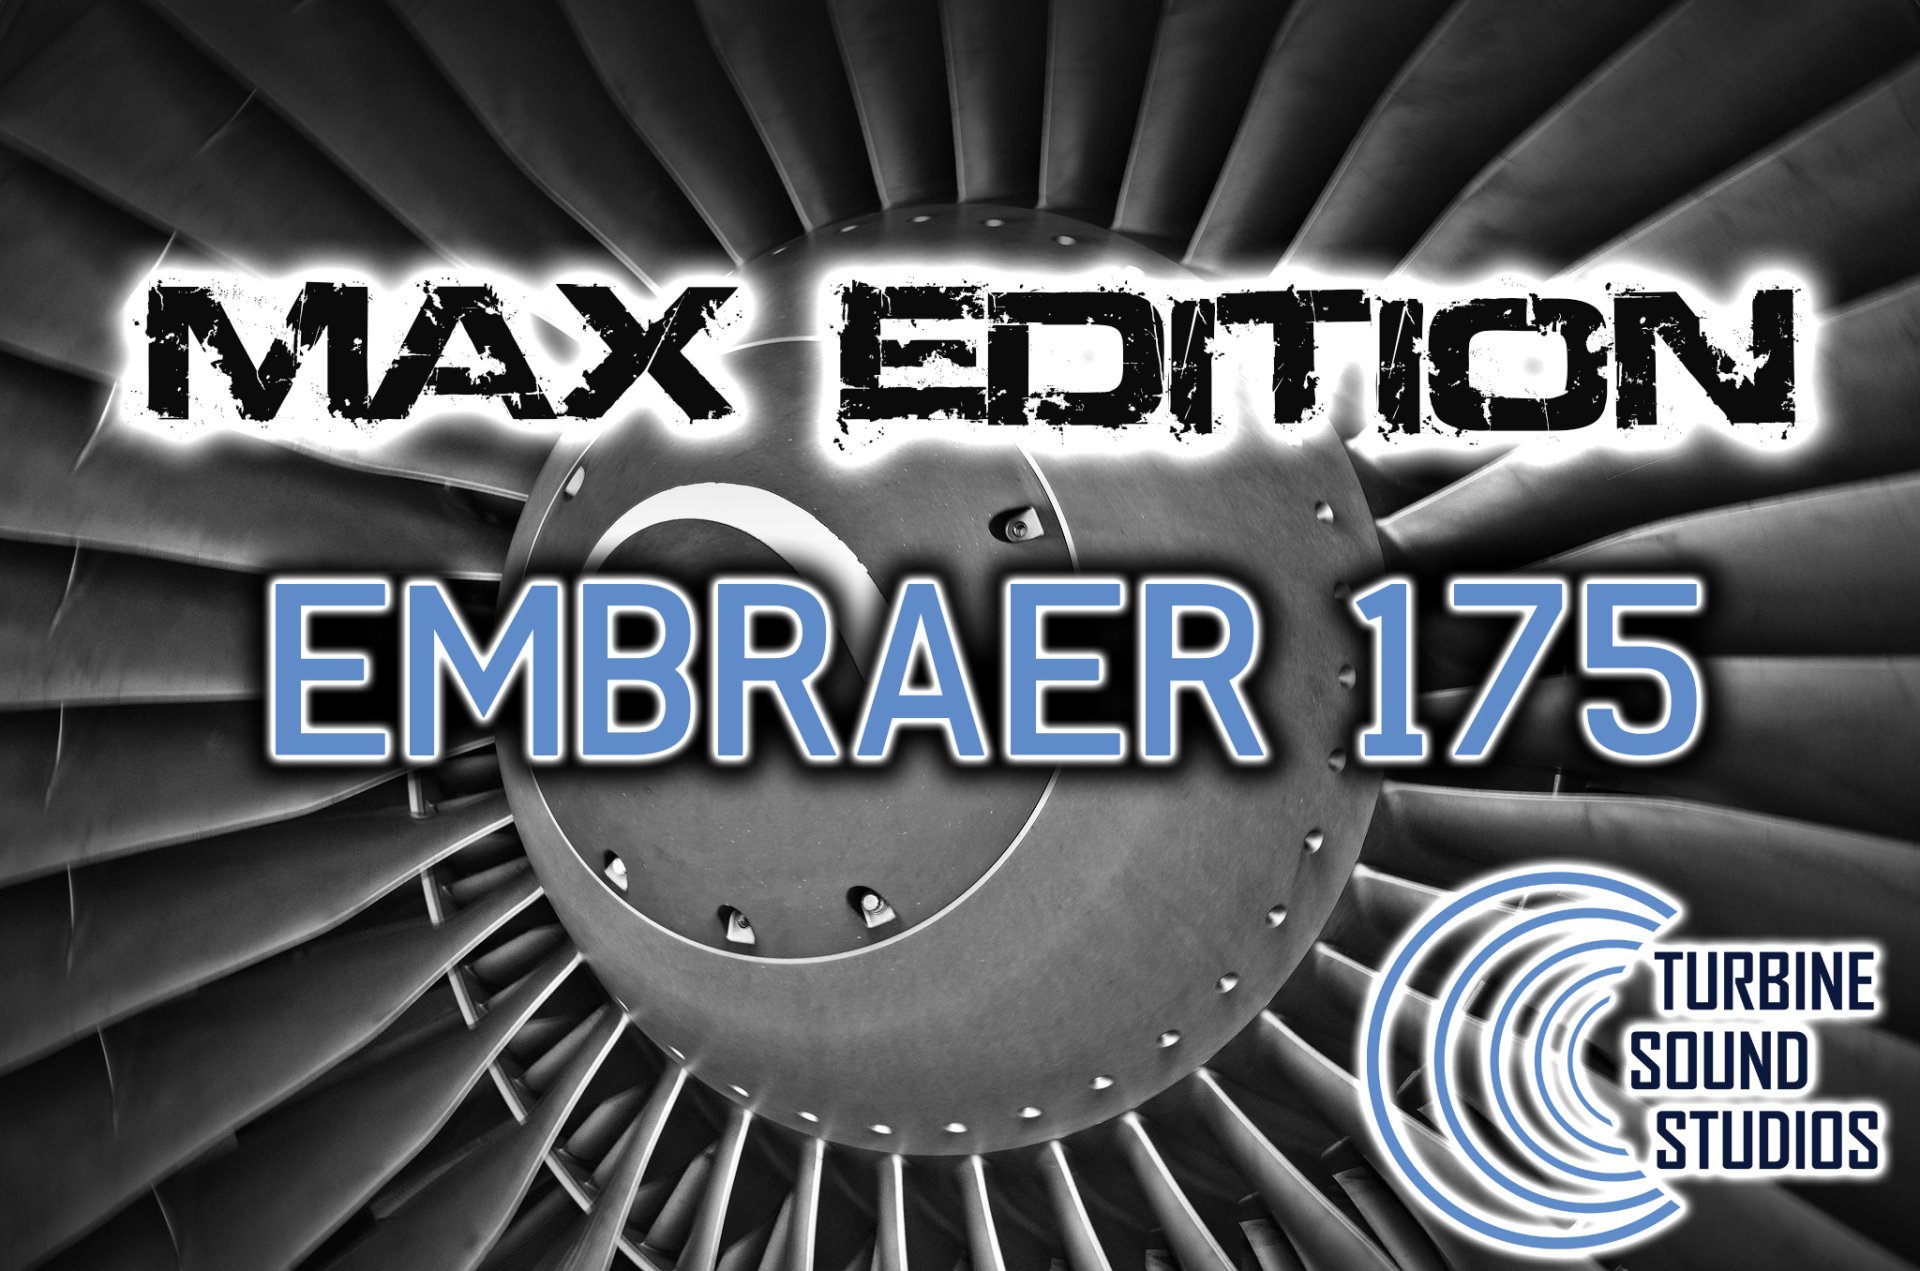 TURBINE SOUND STUDIOS - EMBRAER 175 高清音效包 MAX版本 FSX P3D